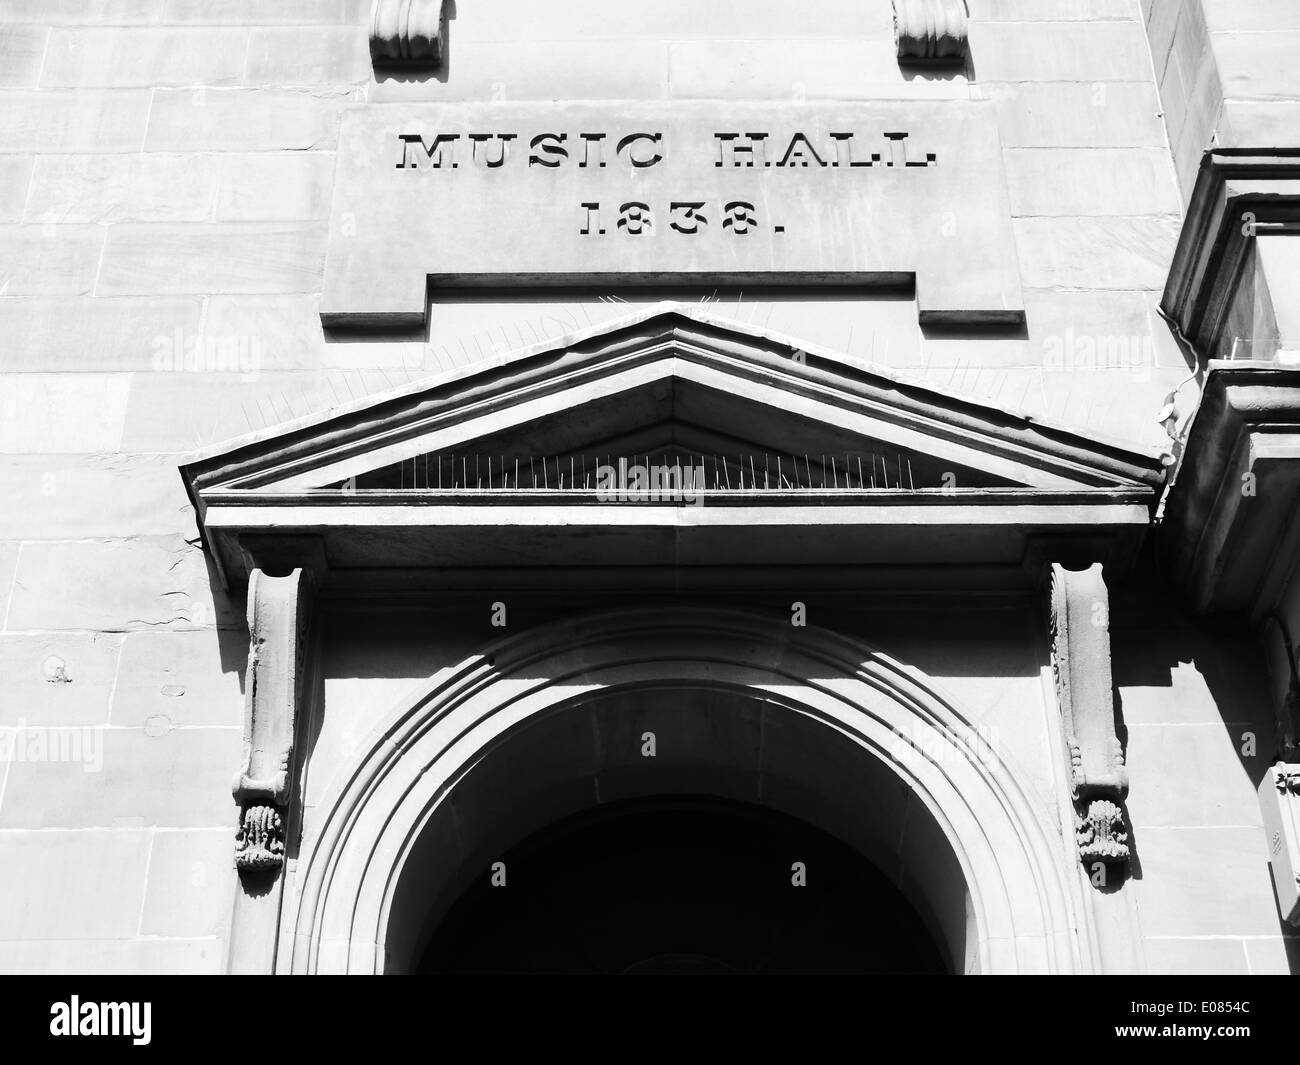 Architectural detail of an historic music hall building in which Charles Dickens appeared, Newcastle upon Tyne, England, UK. B&W - Stock Image